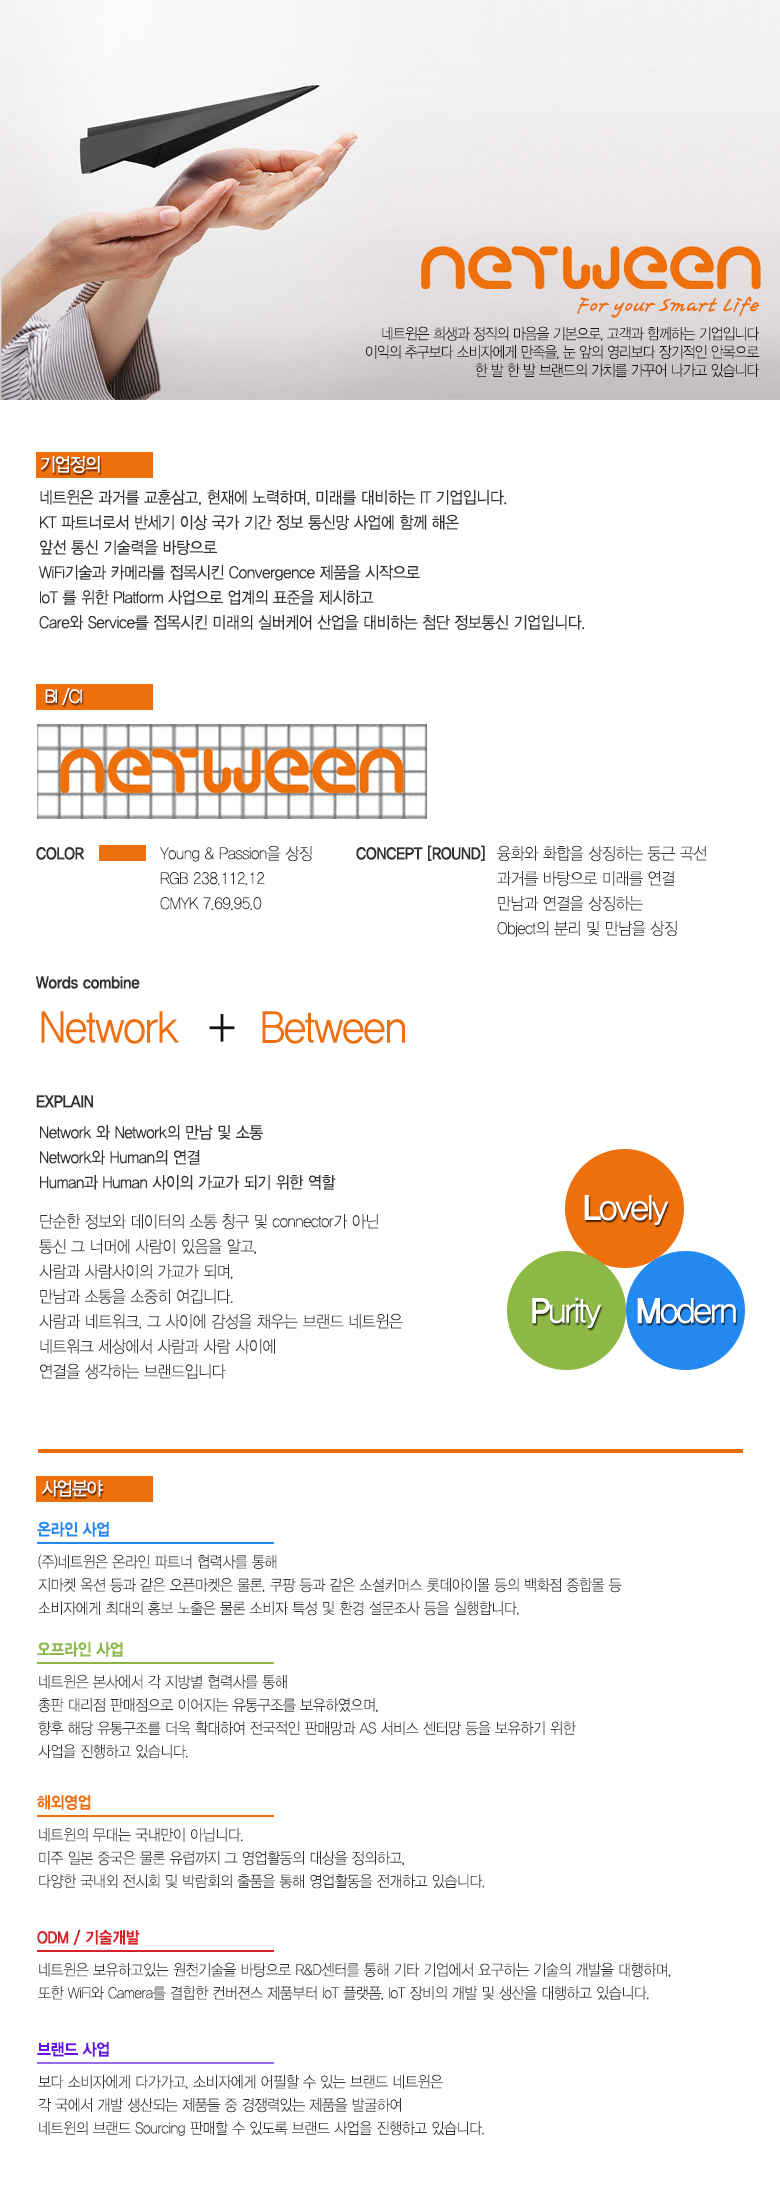 Netween Introduction